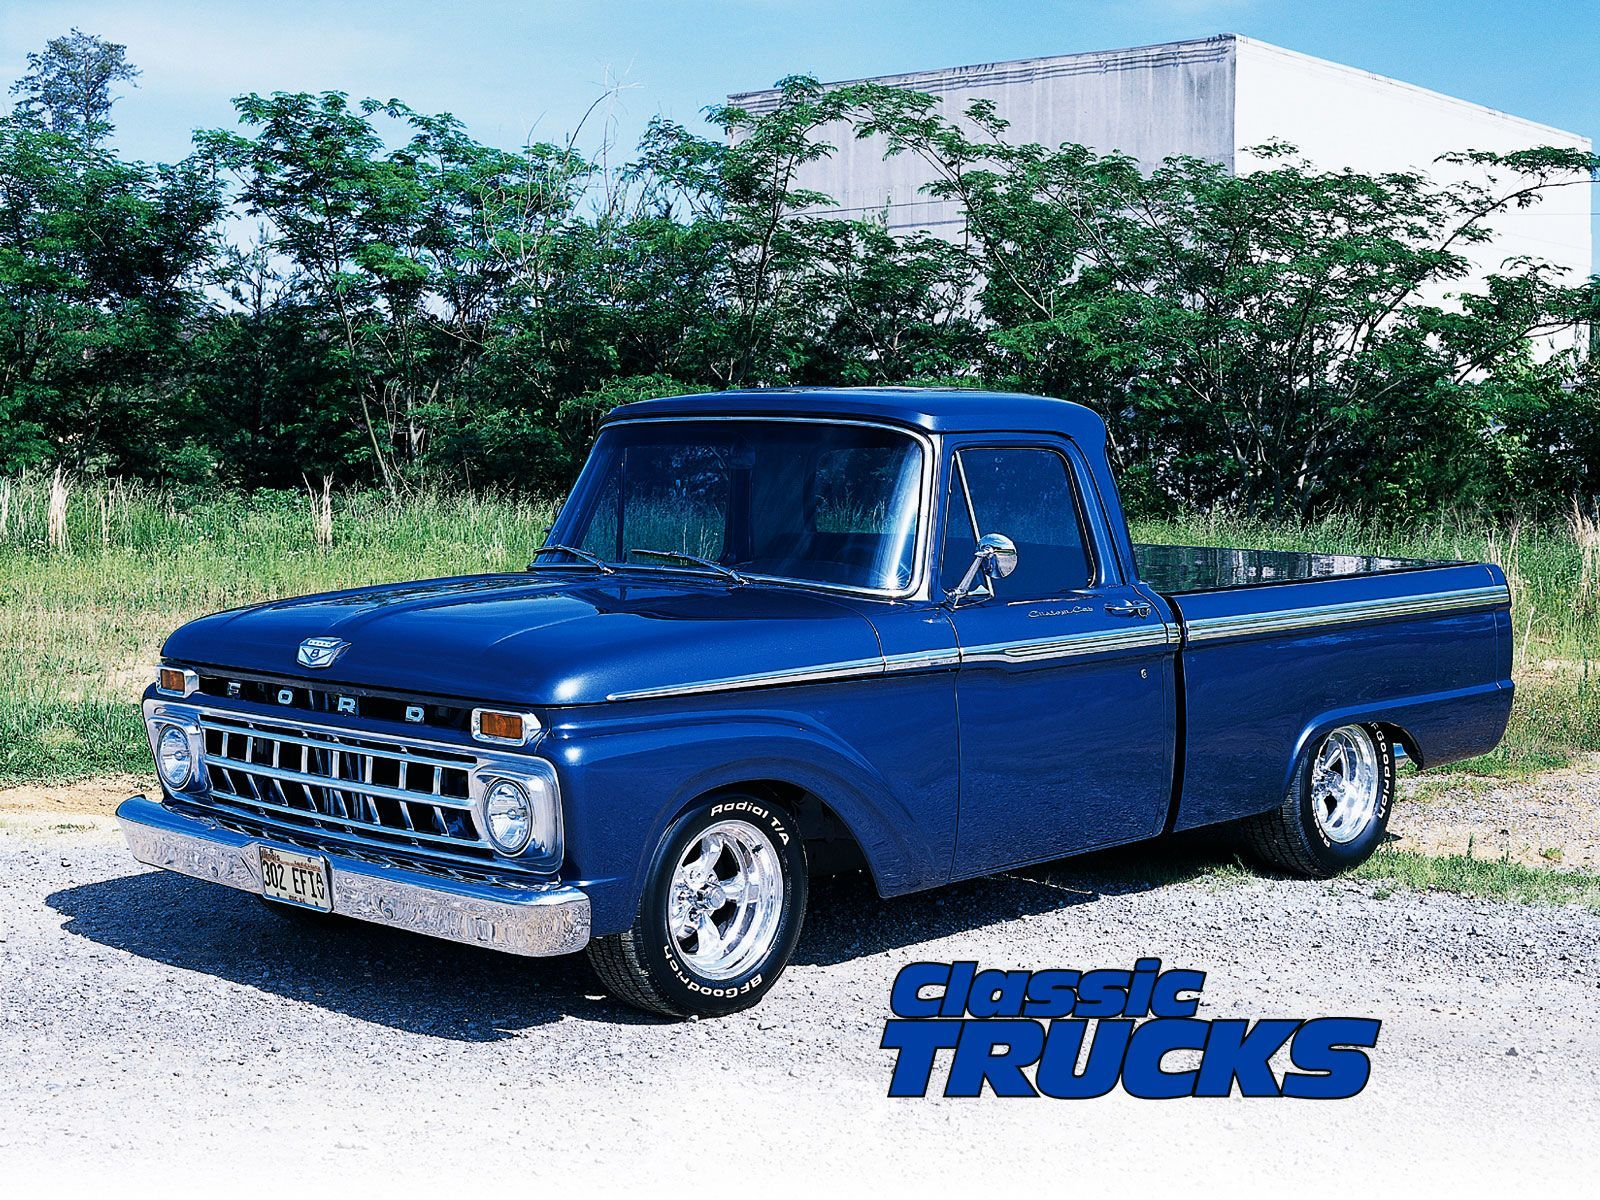 Truck Classic Cars Classic Automobiles 1600x1200